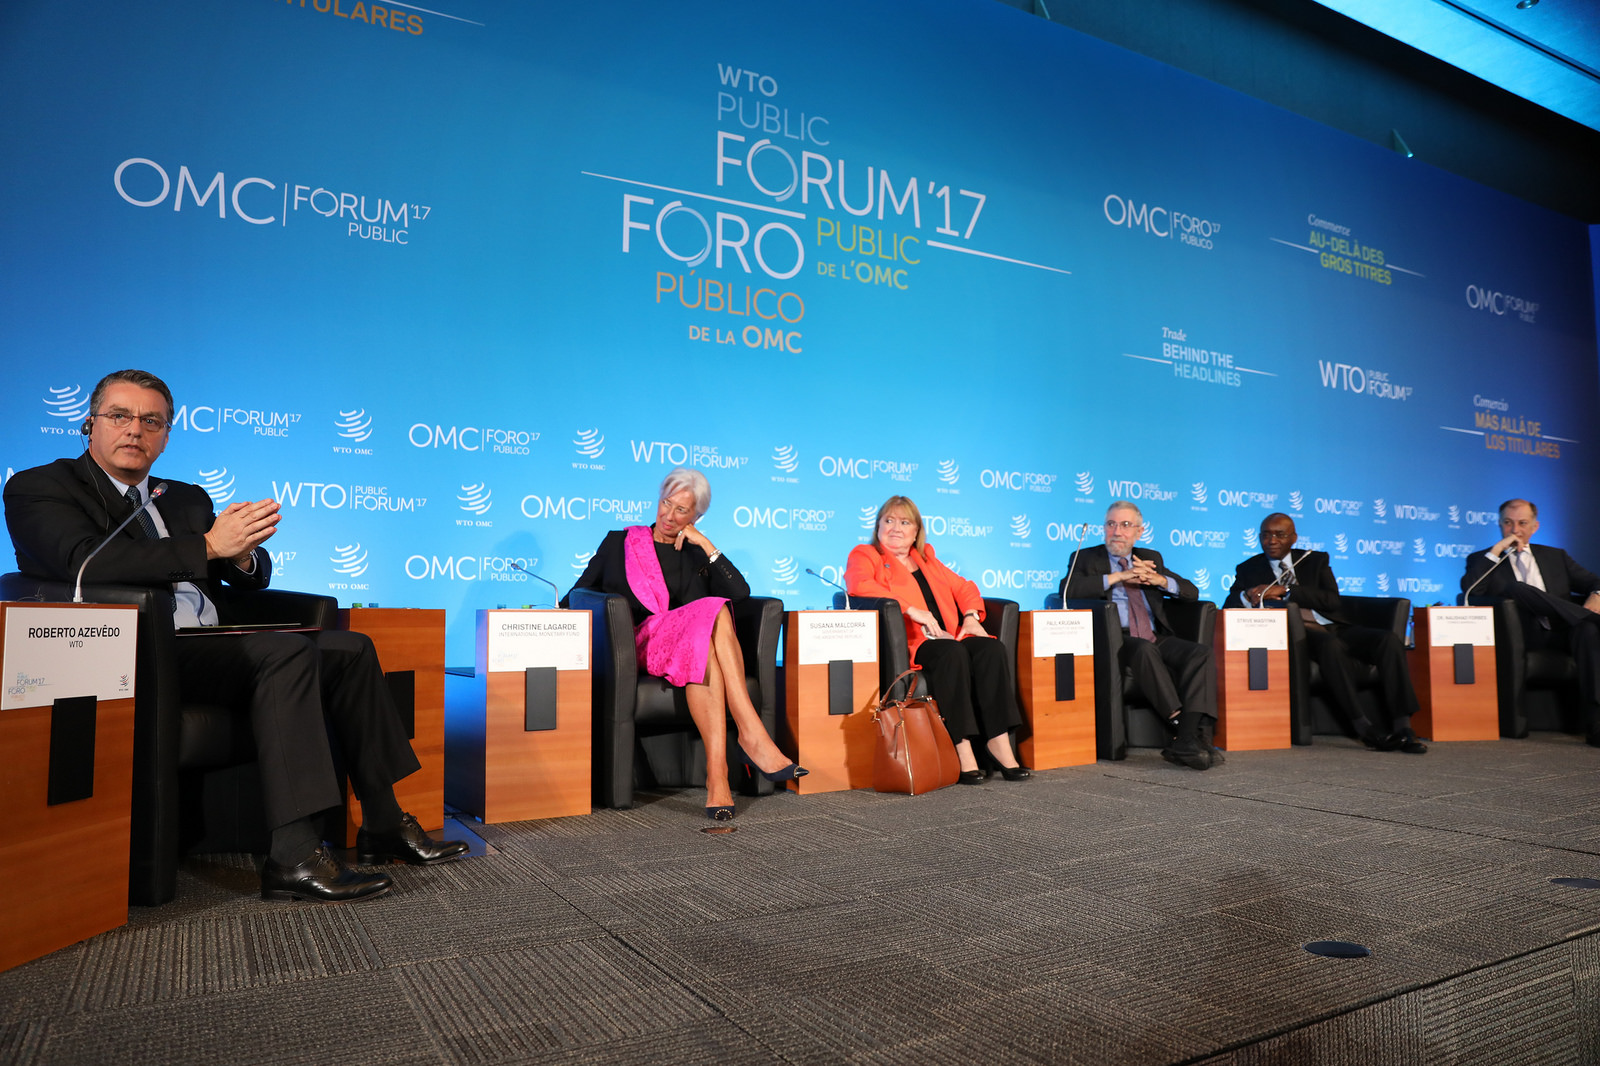 What to expect from the 11th WTO Ministerial Conference in Buenos Aires?